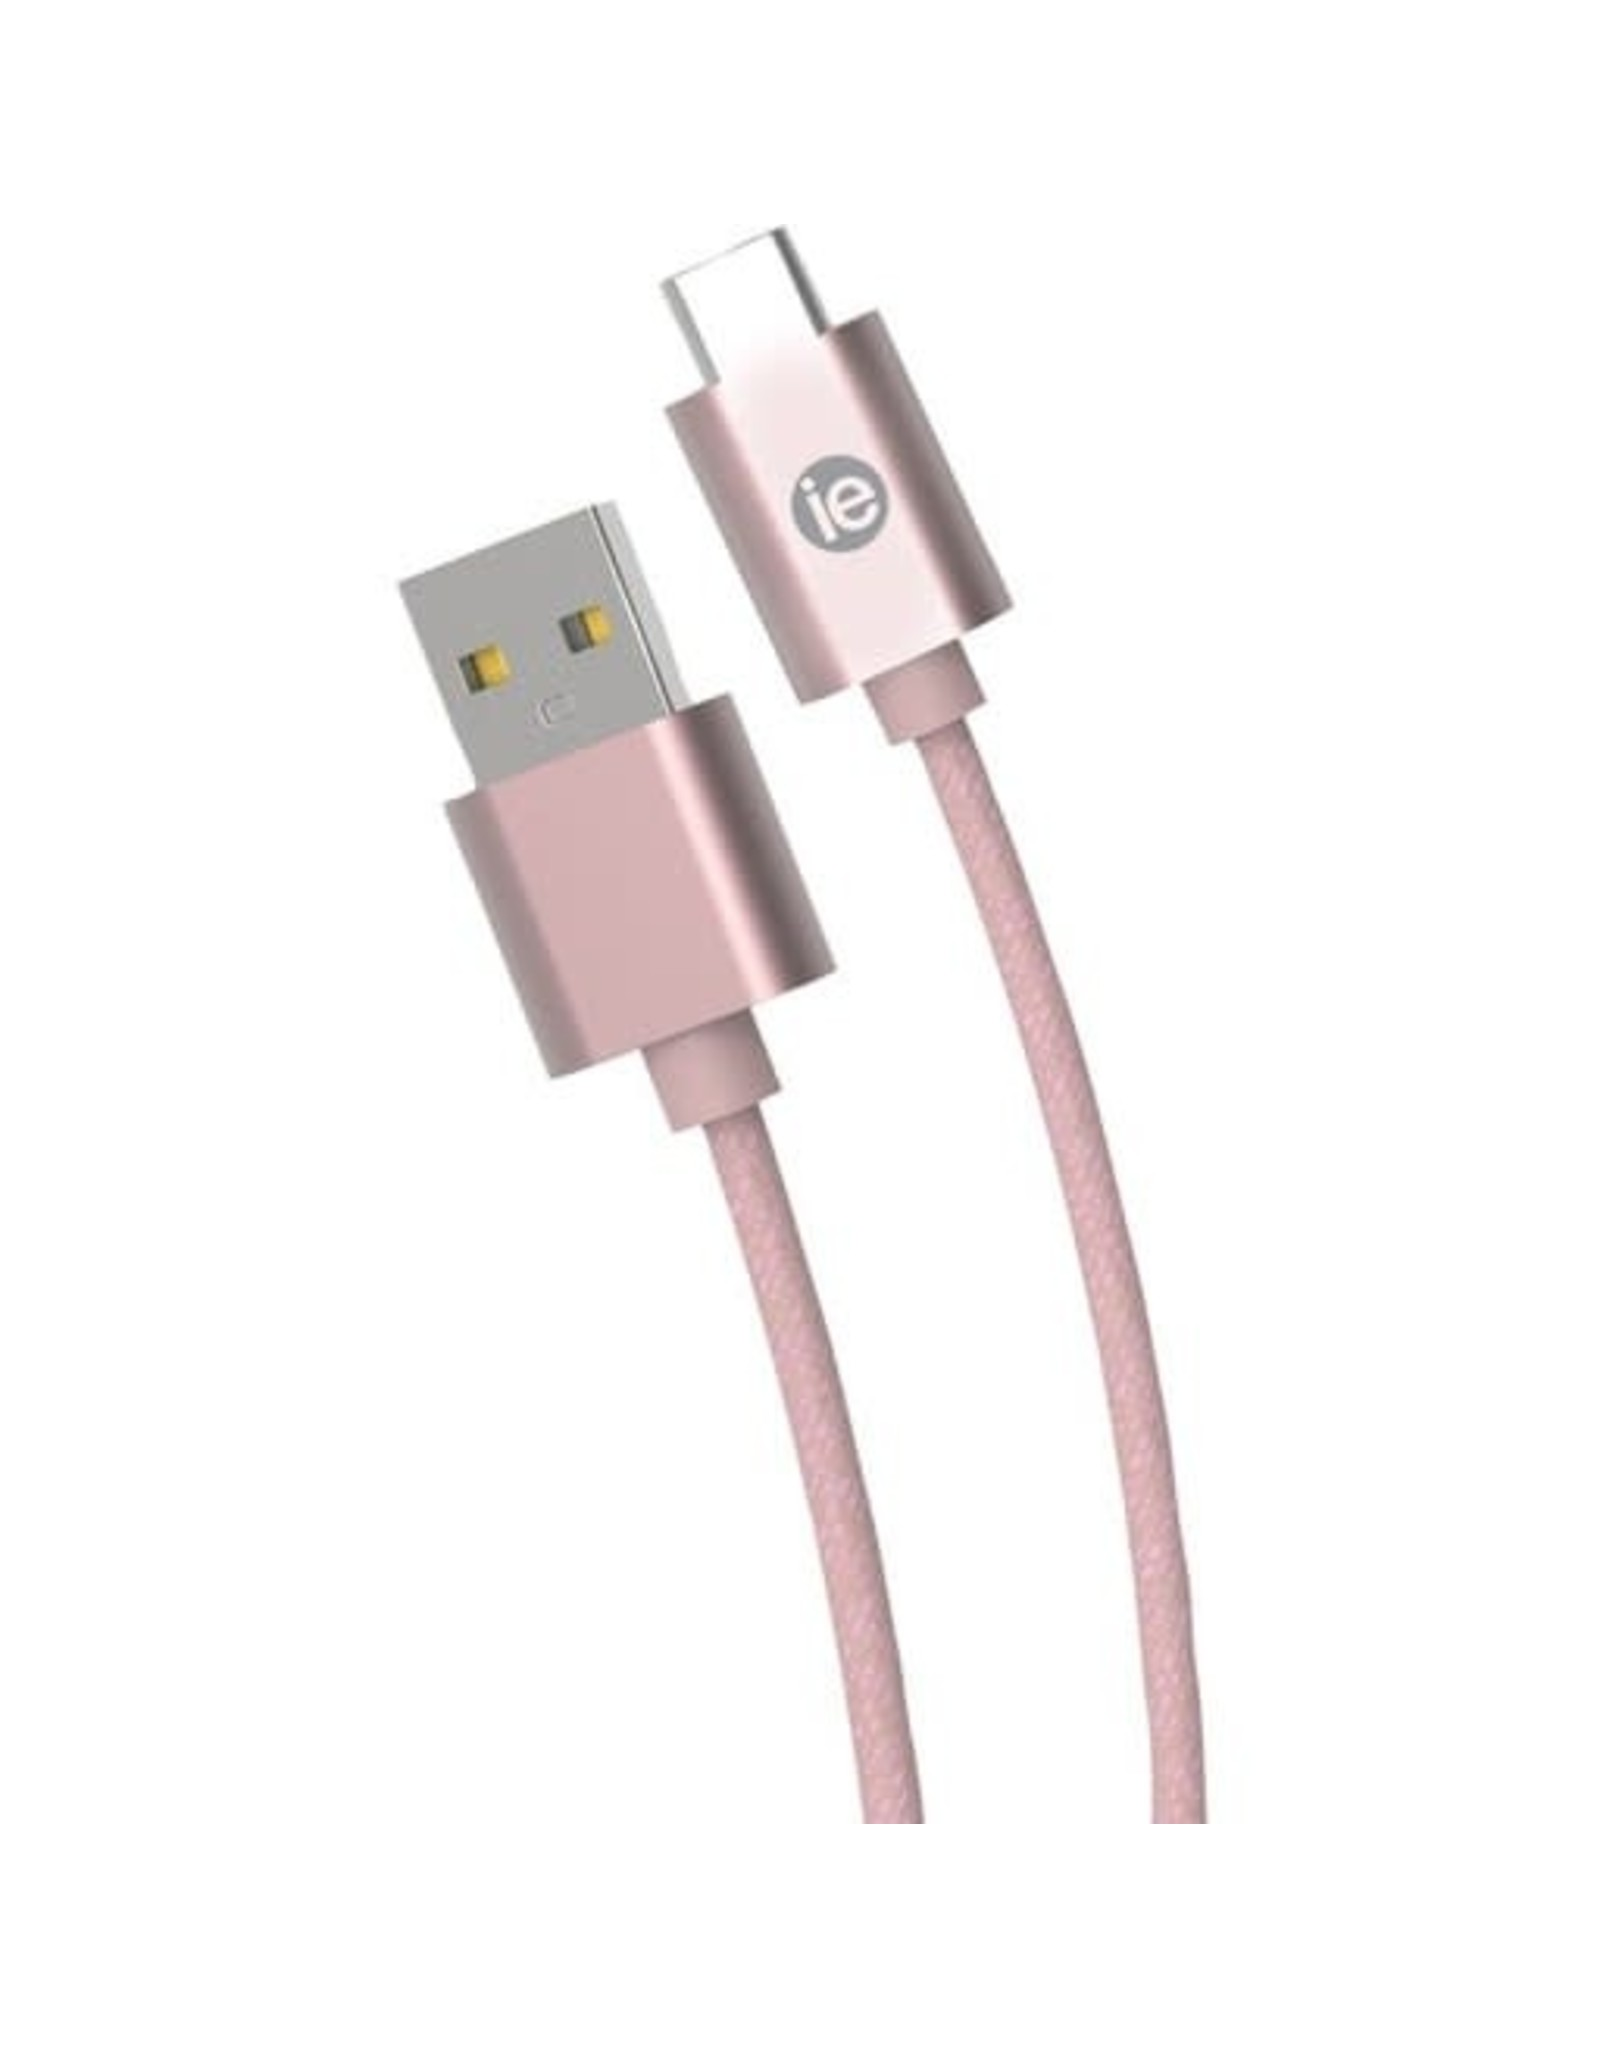 iEssentials iEssentials Charge & Sync Cable USB-C - A Braid 6ft RGld  SKU:49056